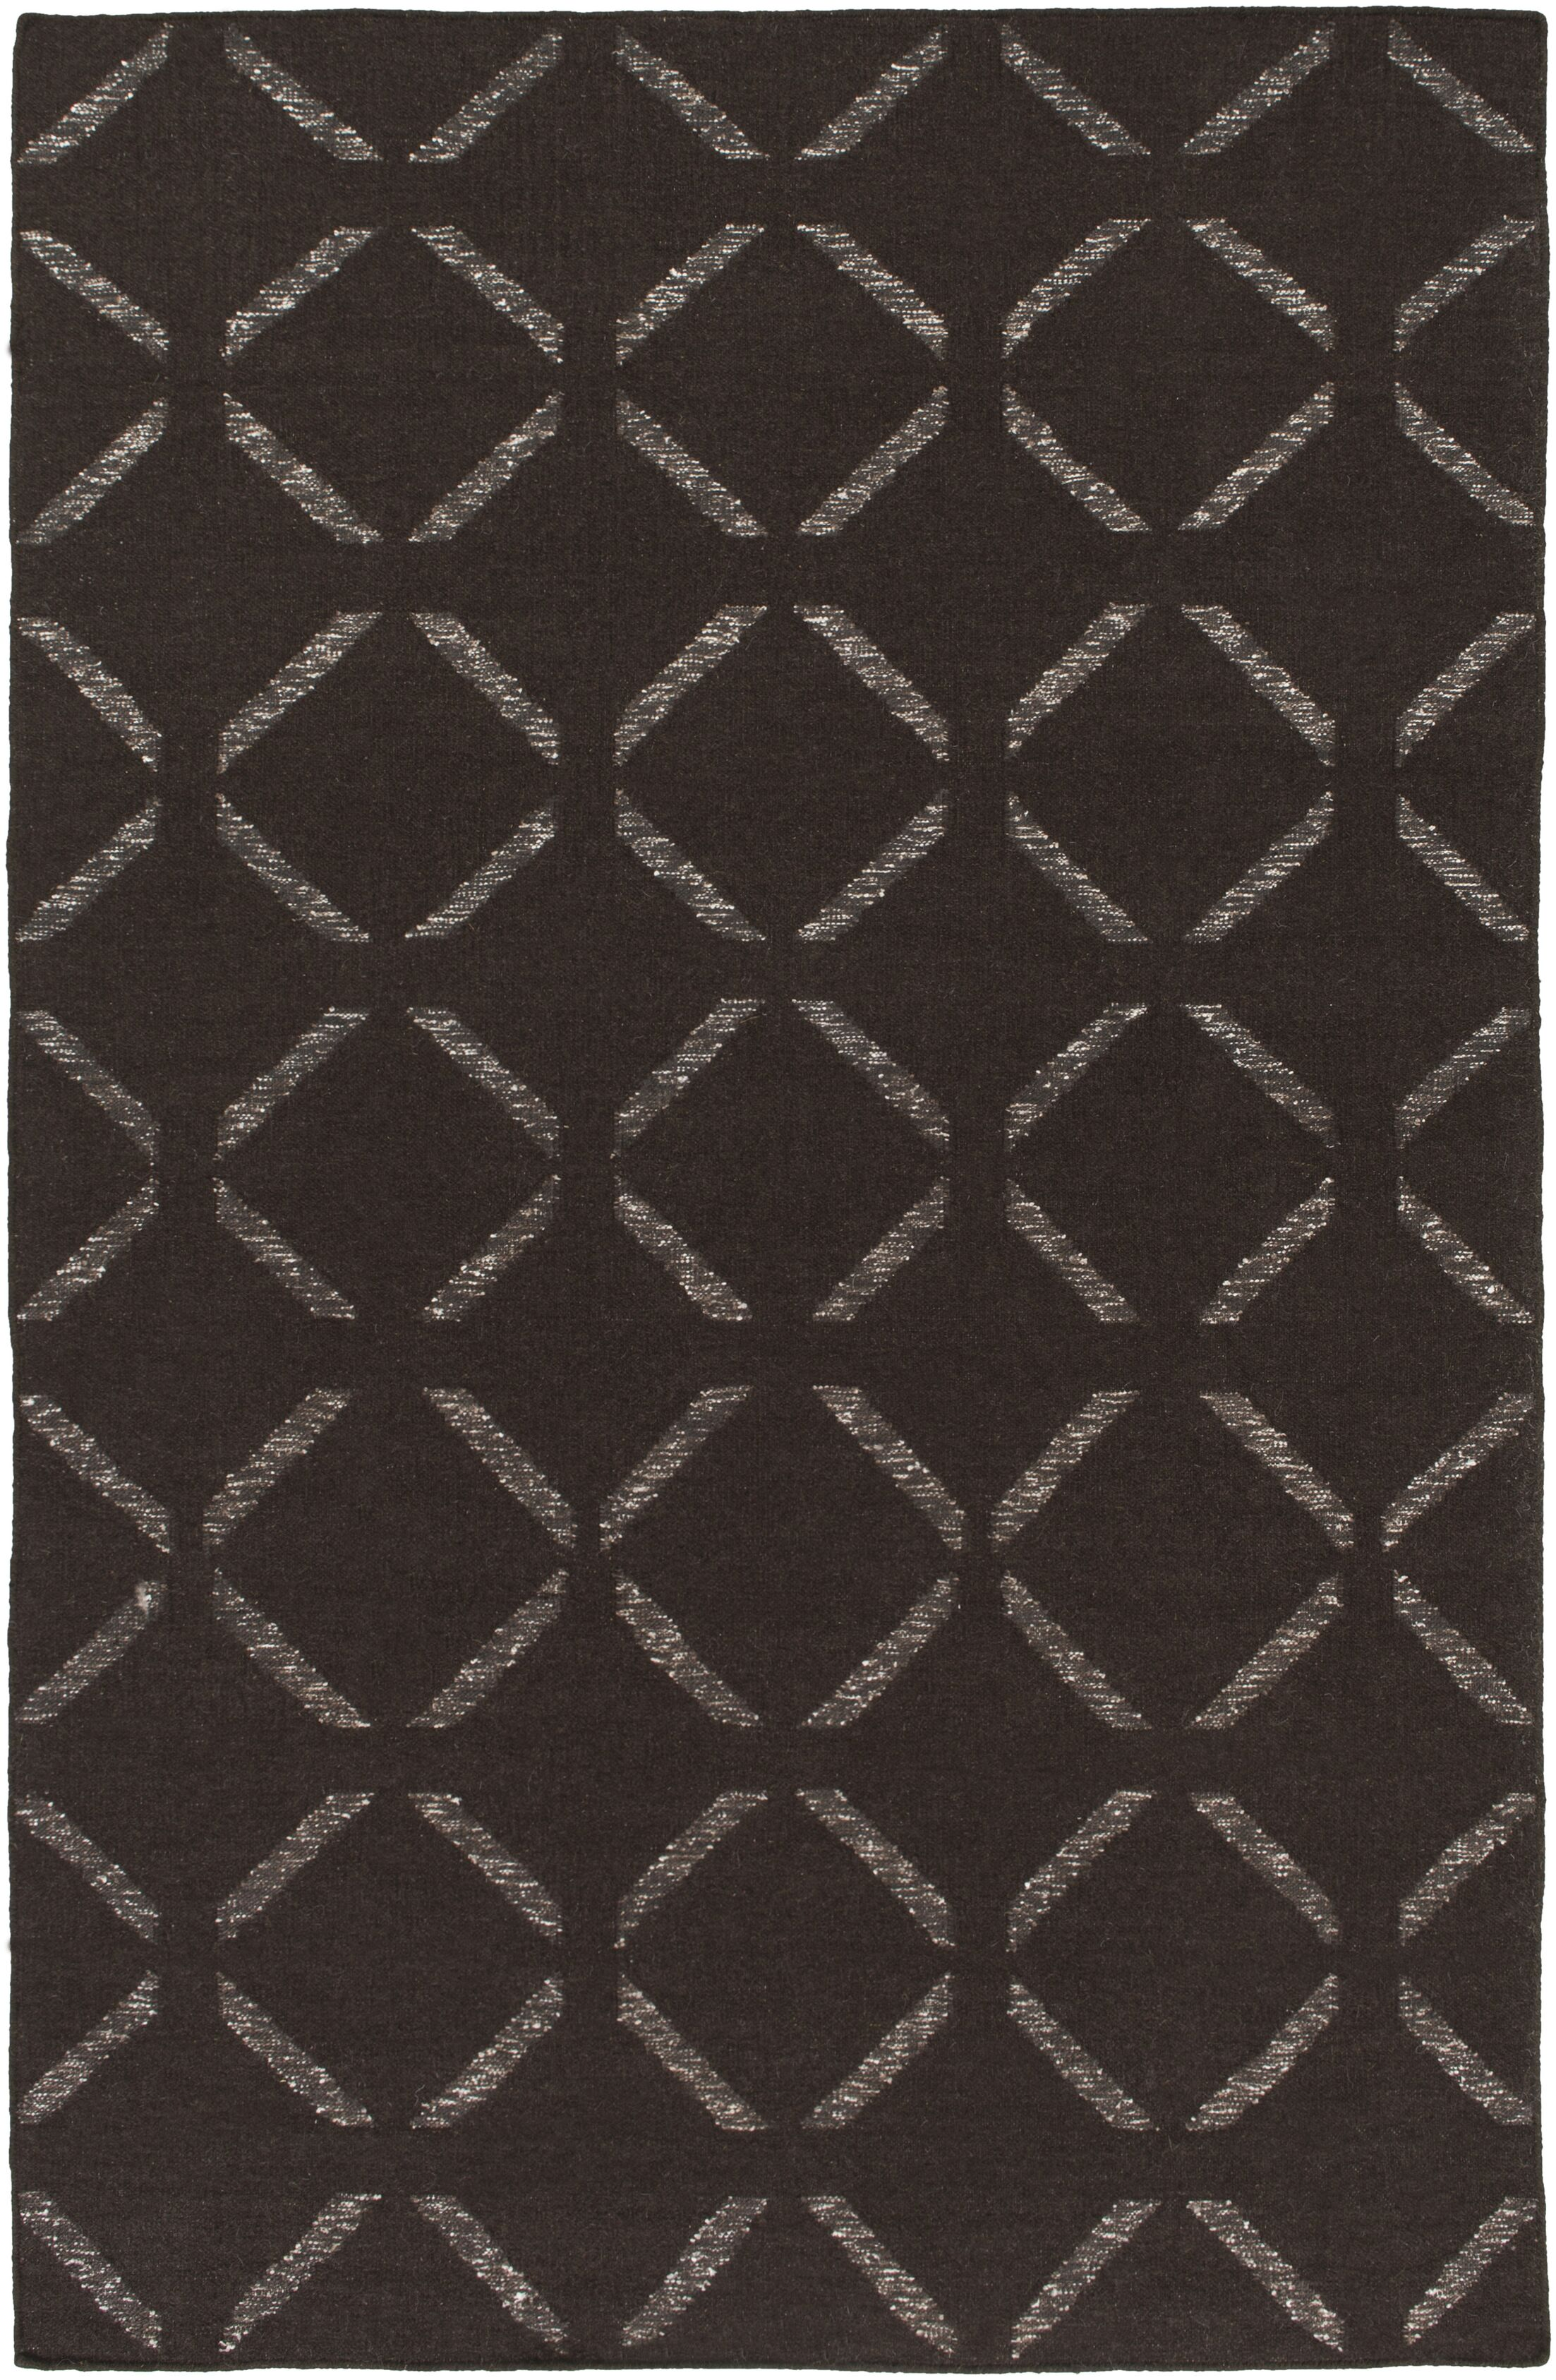 Hand-Woven Chocolate Area Rug Rug Size: Rectangle 4' x 6'